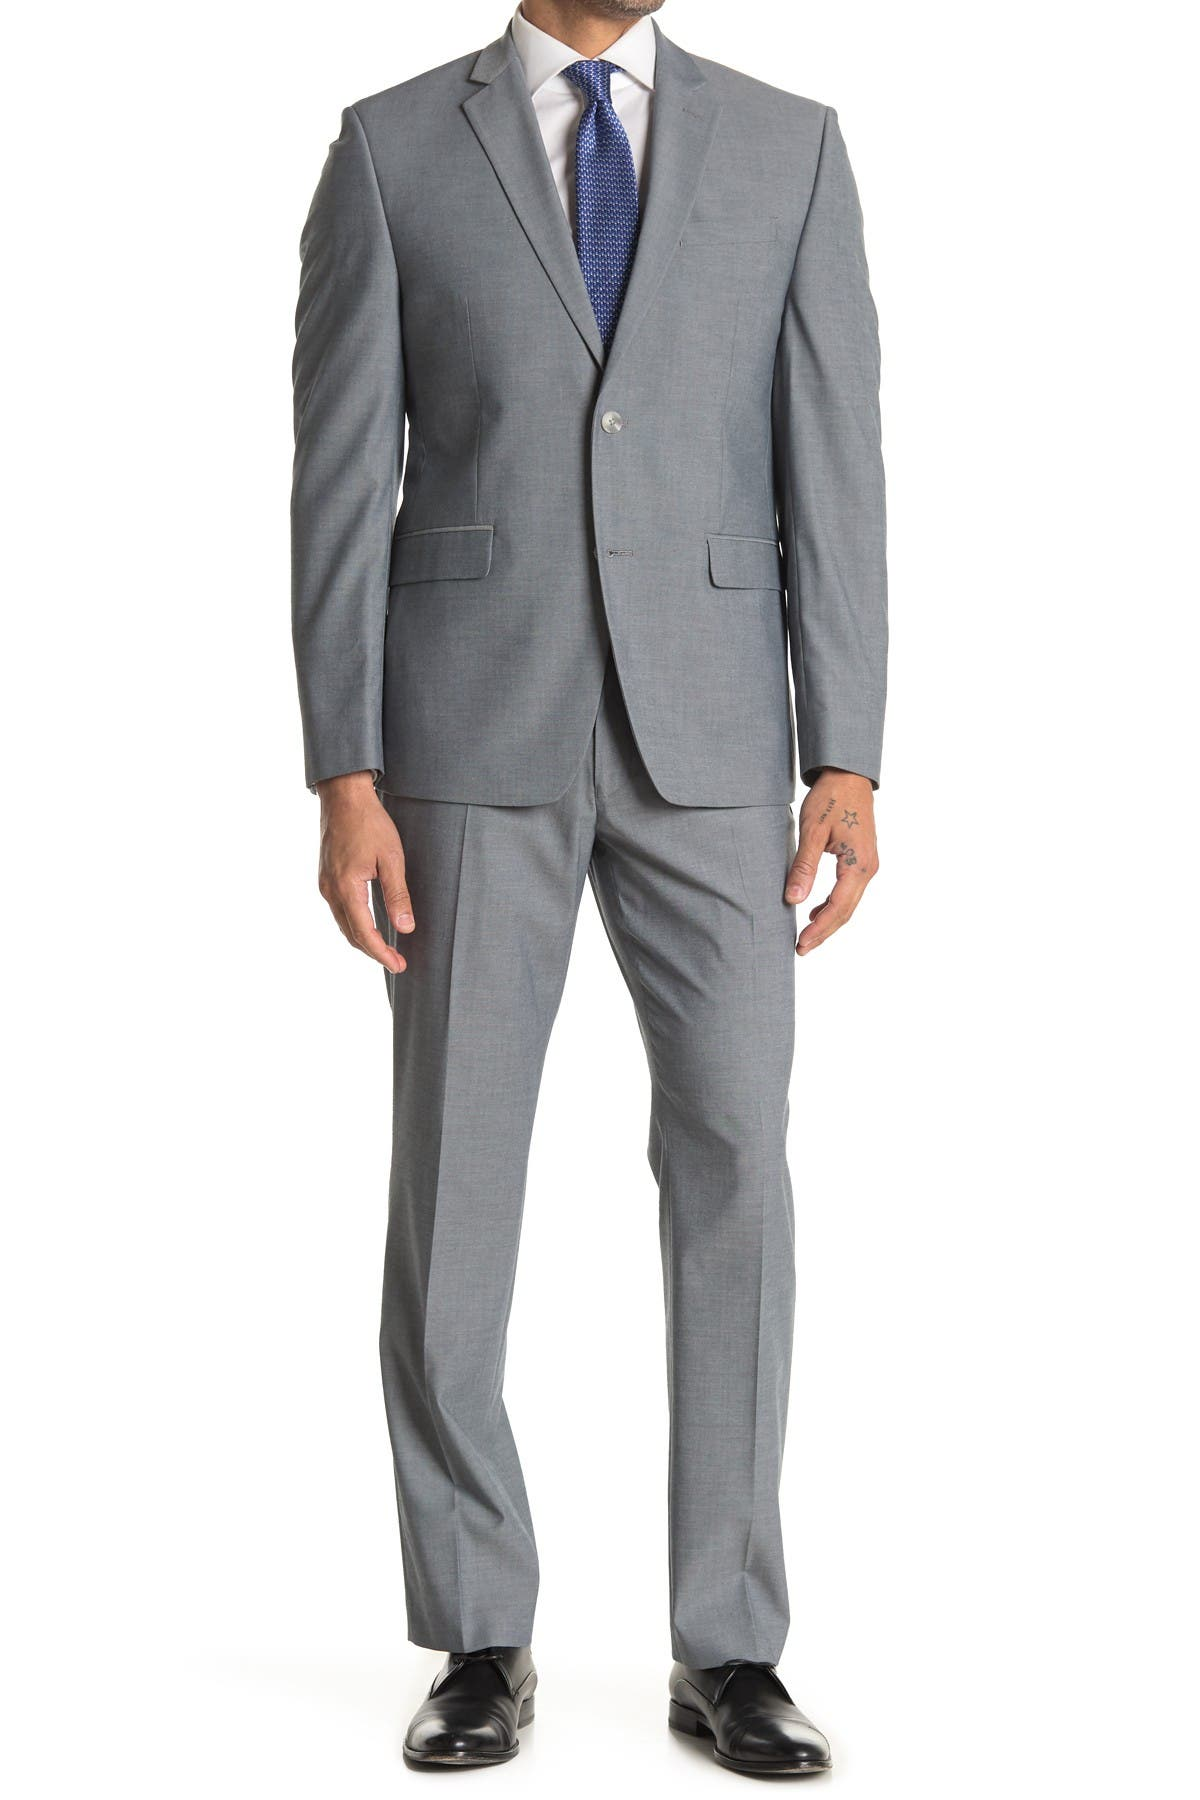 Image of Perry Ellis Grey Sharkskin Two Button Notch Lapel Slim Fit Suit